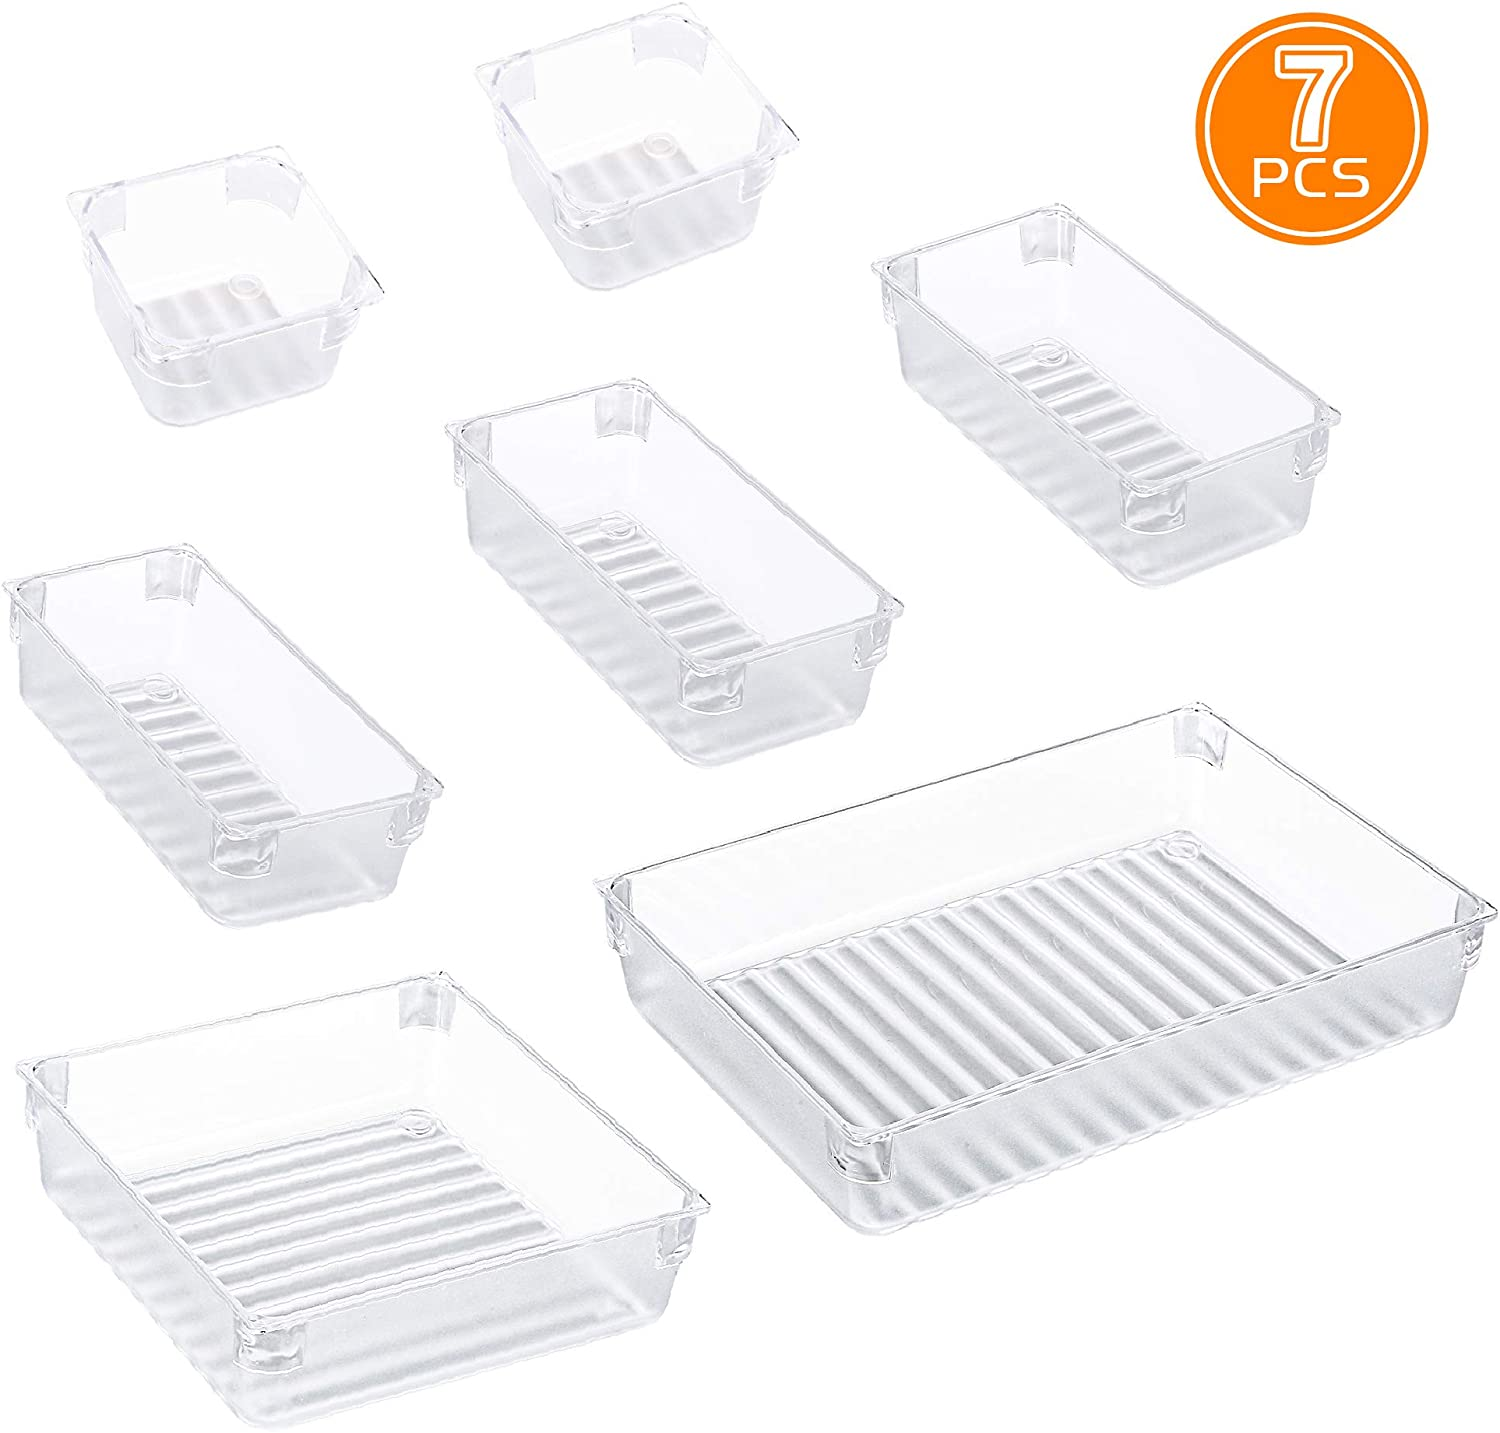 IPOW 7-Piece Desk Drawer Organizer Trays with 4 Different Sizes Clear Plastic Drawer Dividers Organizer Bins for Bedroom Dresser Bathroom Kitchen Office